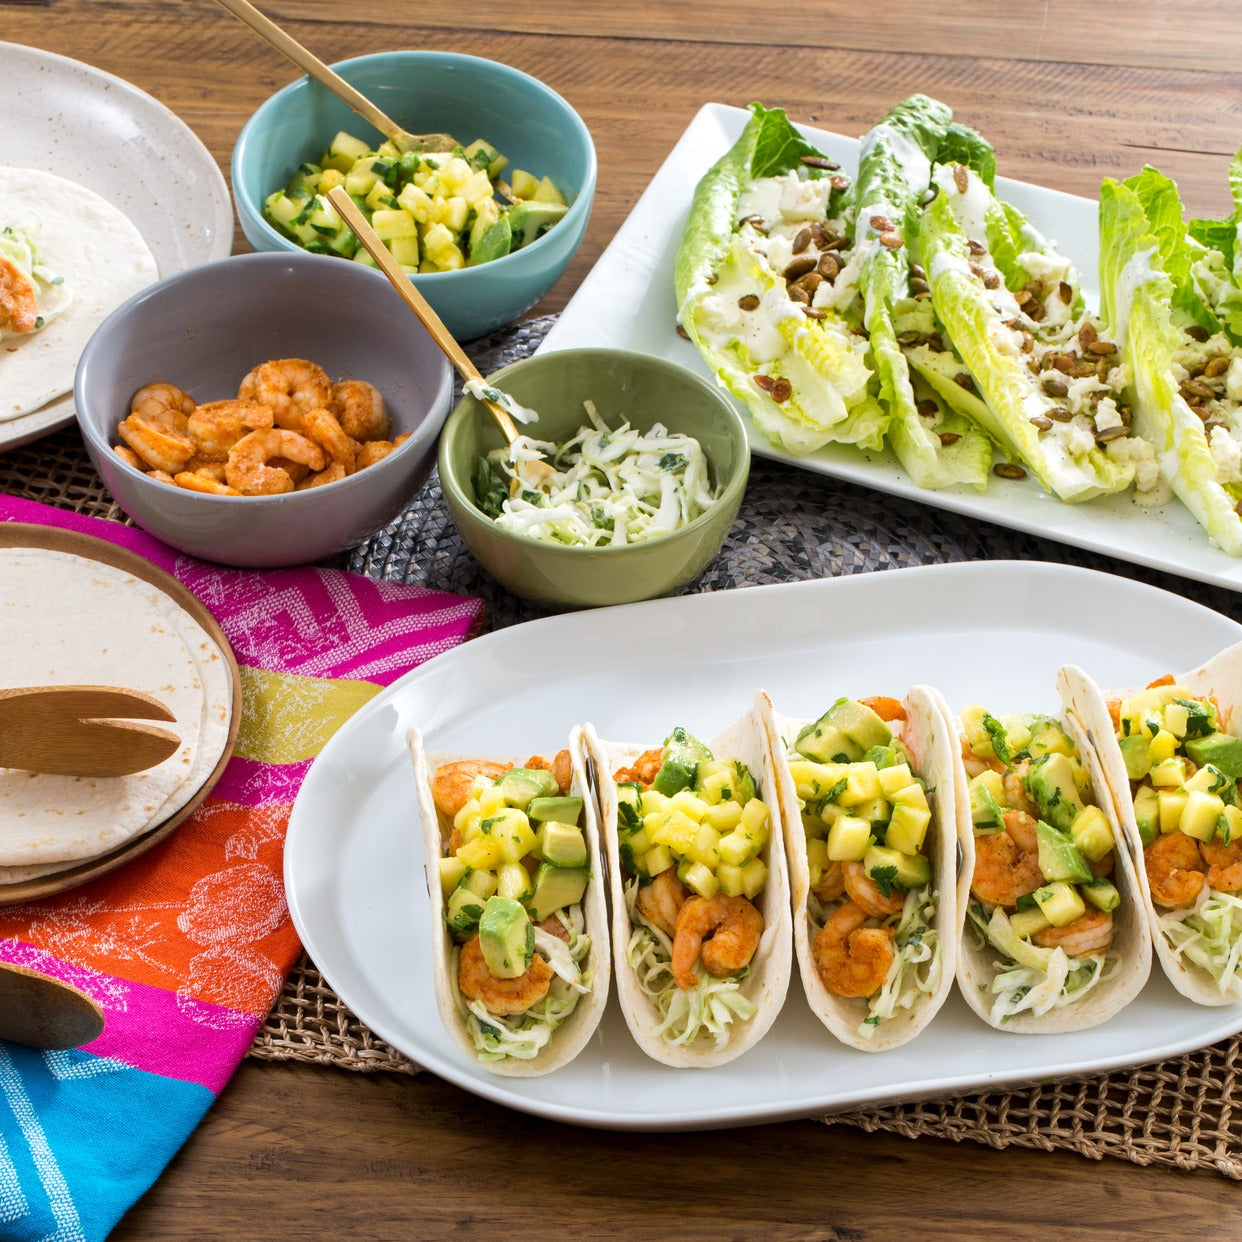 Shrimp & Pineapple Soft Tacos with Creamy Cabbage Slaw & Crunchy Romaine Salad